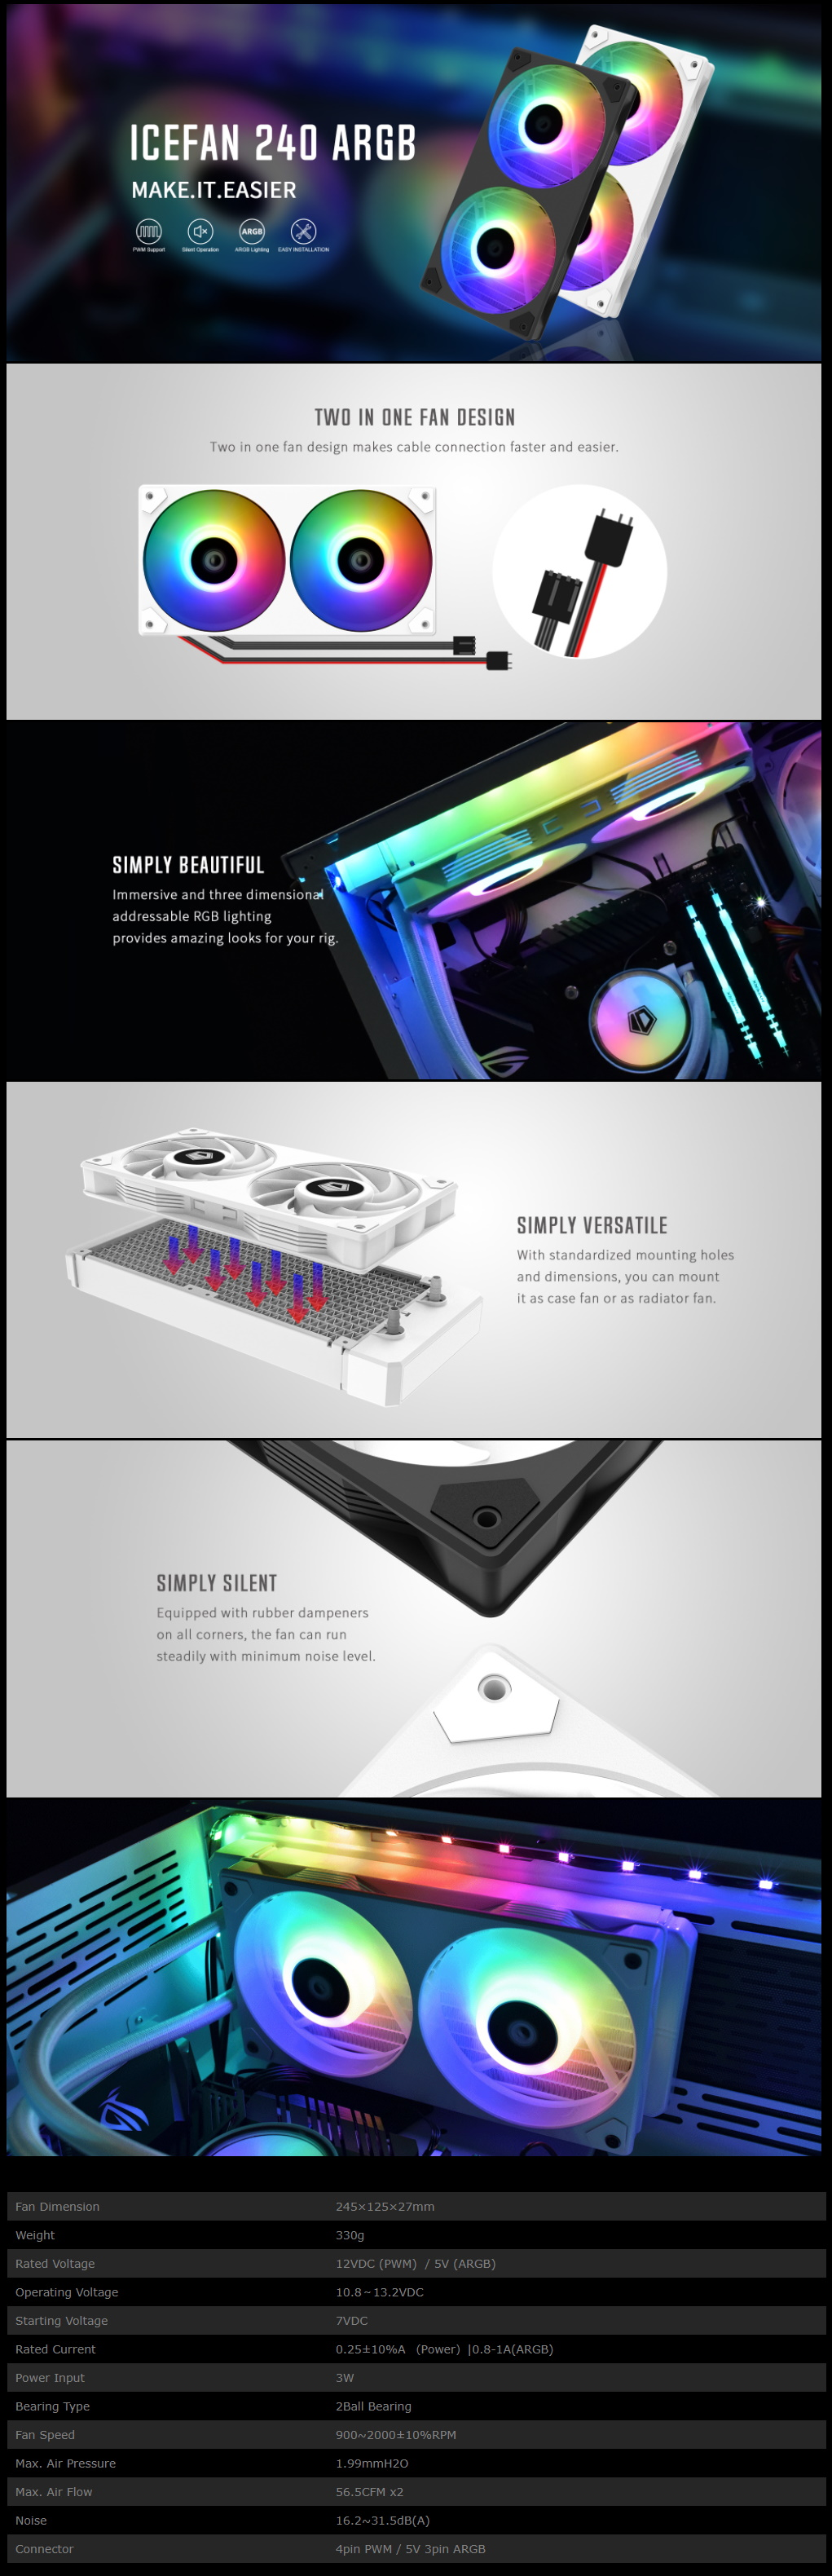 A large marketing image providing additional information about the product ID-COOLING IceFan 240 ARGB Snow 2-in-1 Cooling Fan - Additional alt info not provided